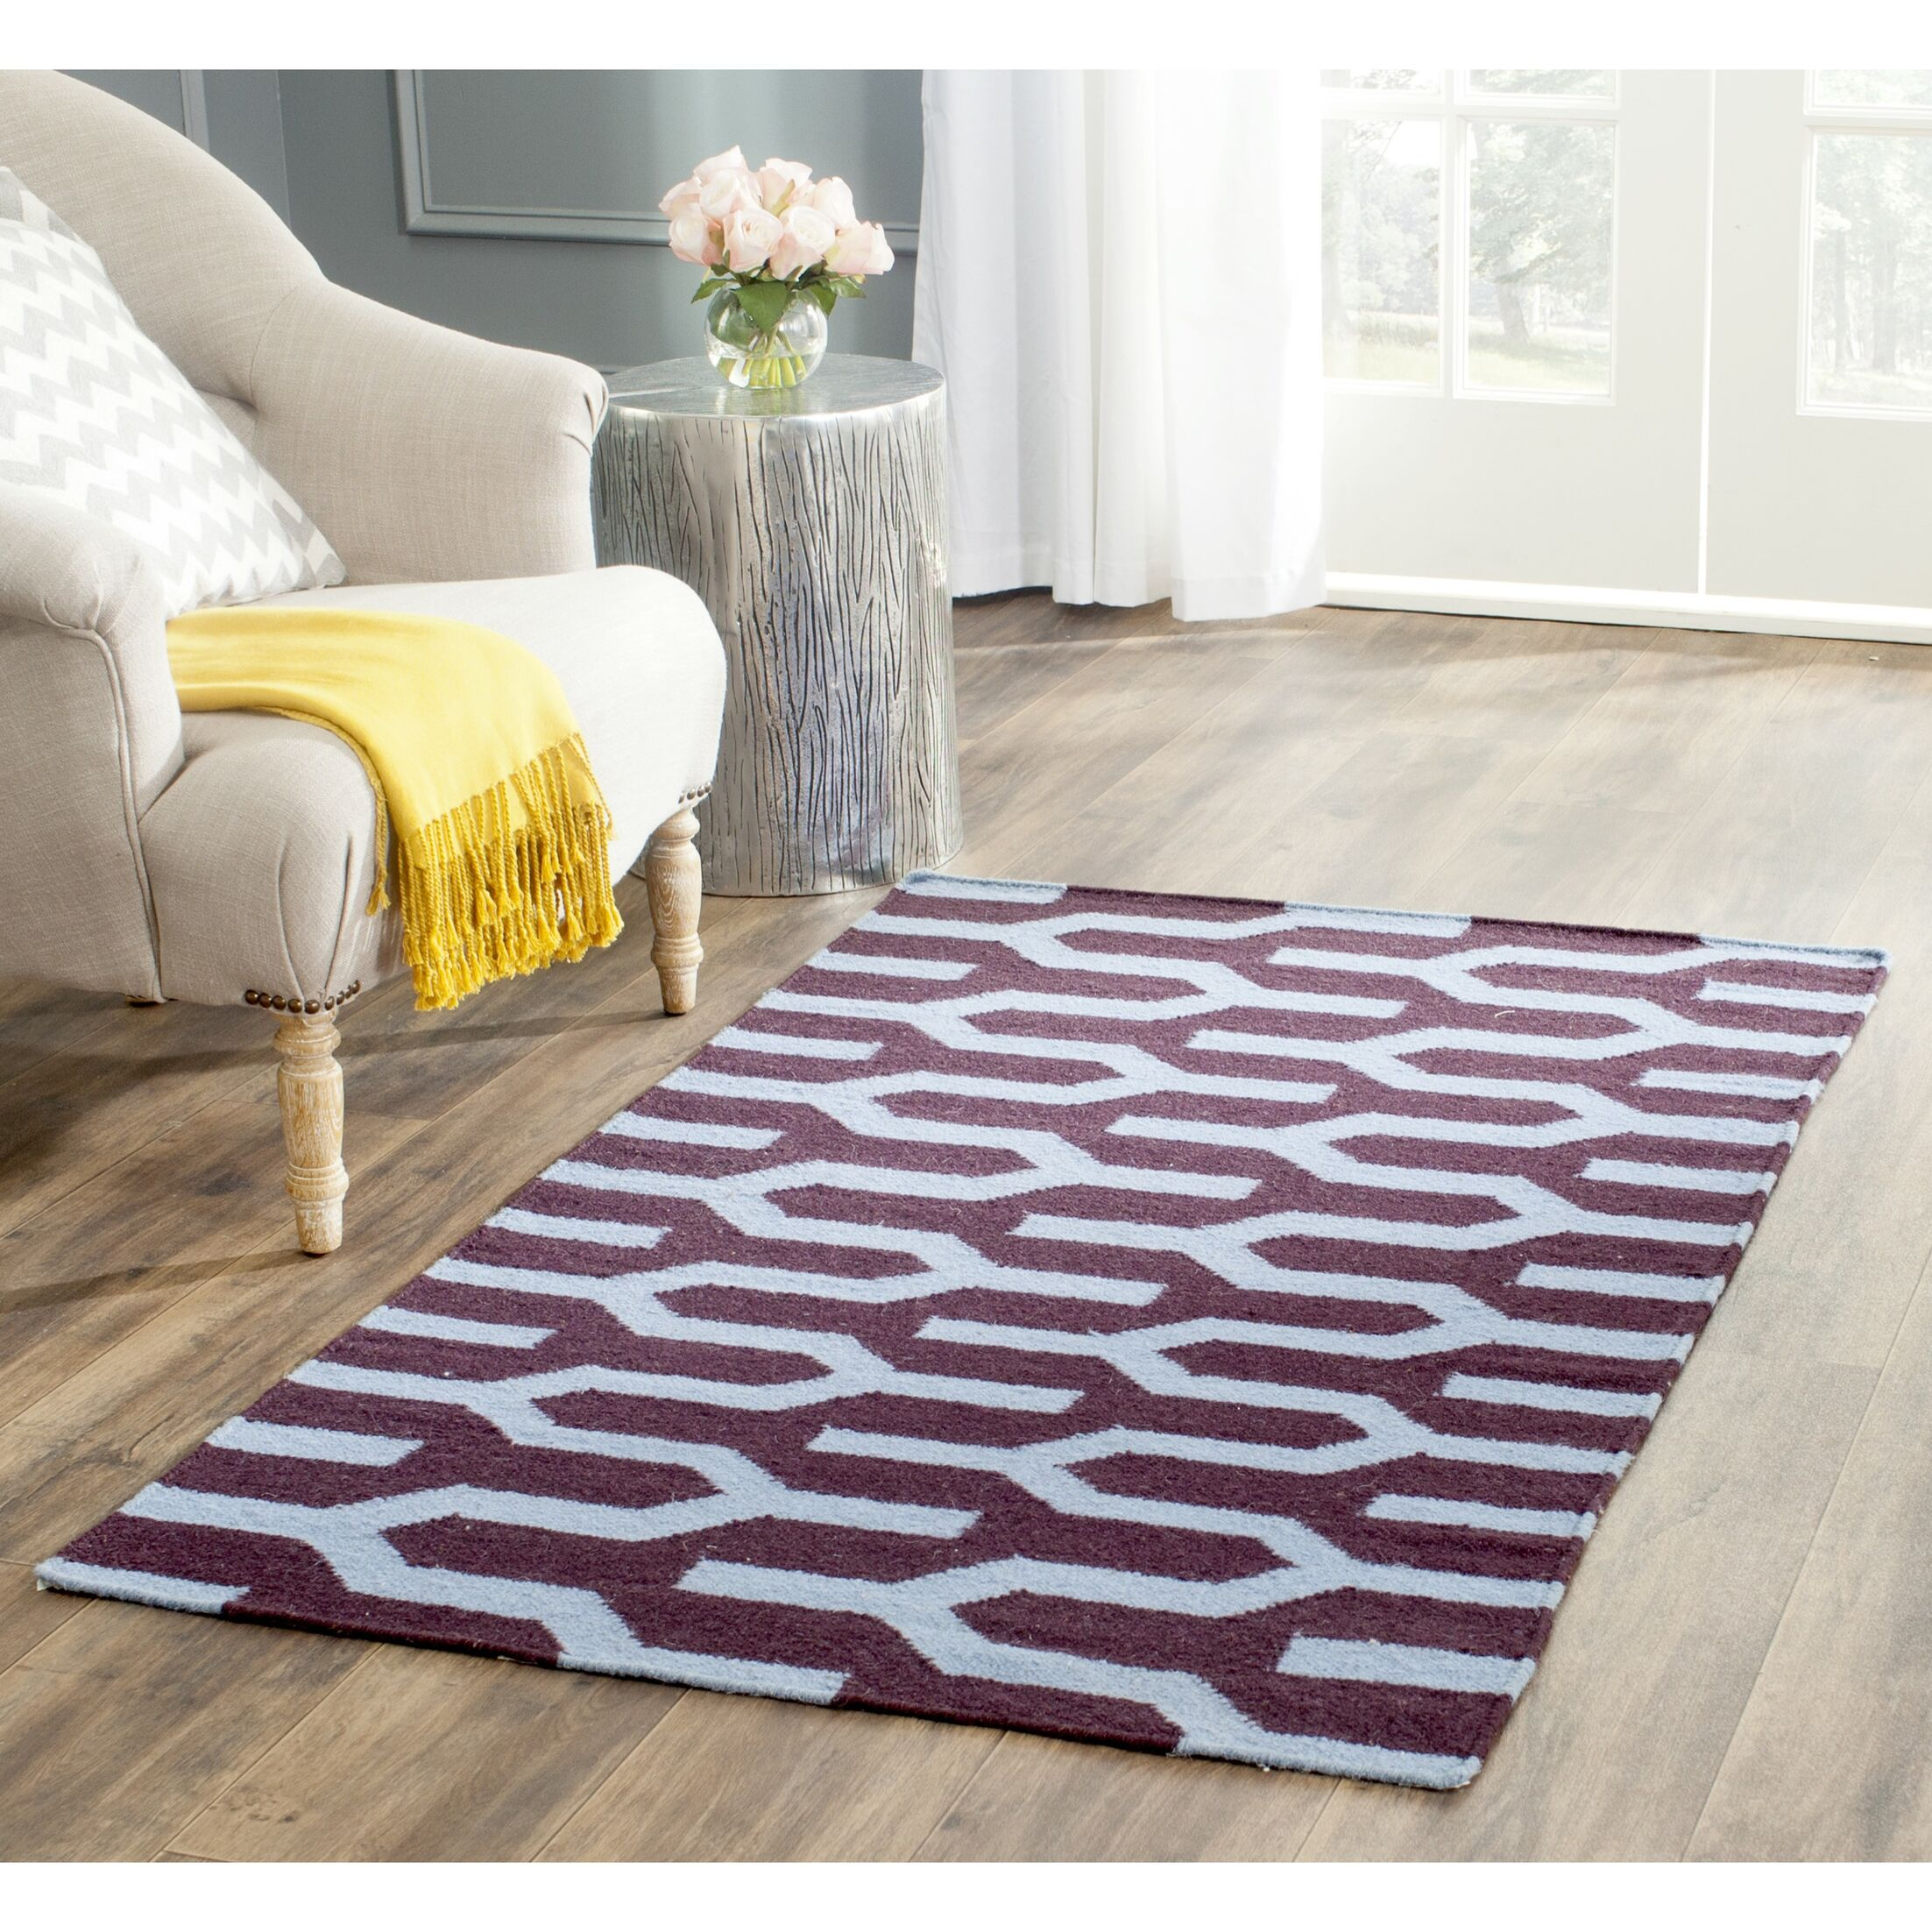 Dhurries Hand-Woven Wool Purple/Blue Area Rug Rug Size: Rectangle 6' x 9'